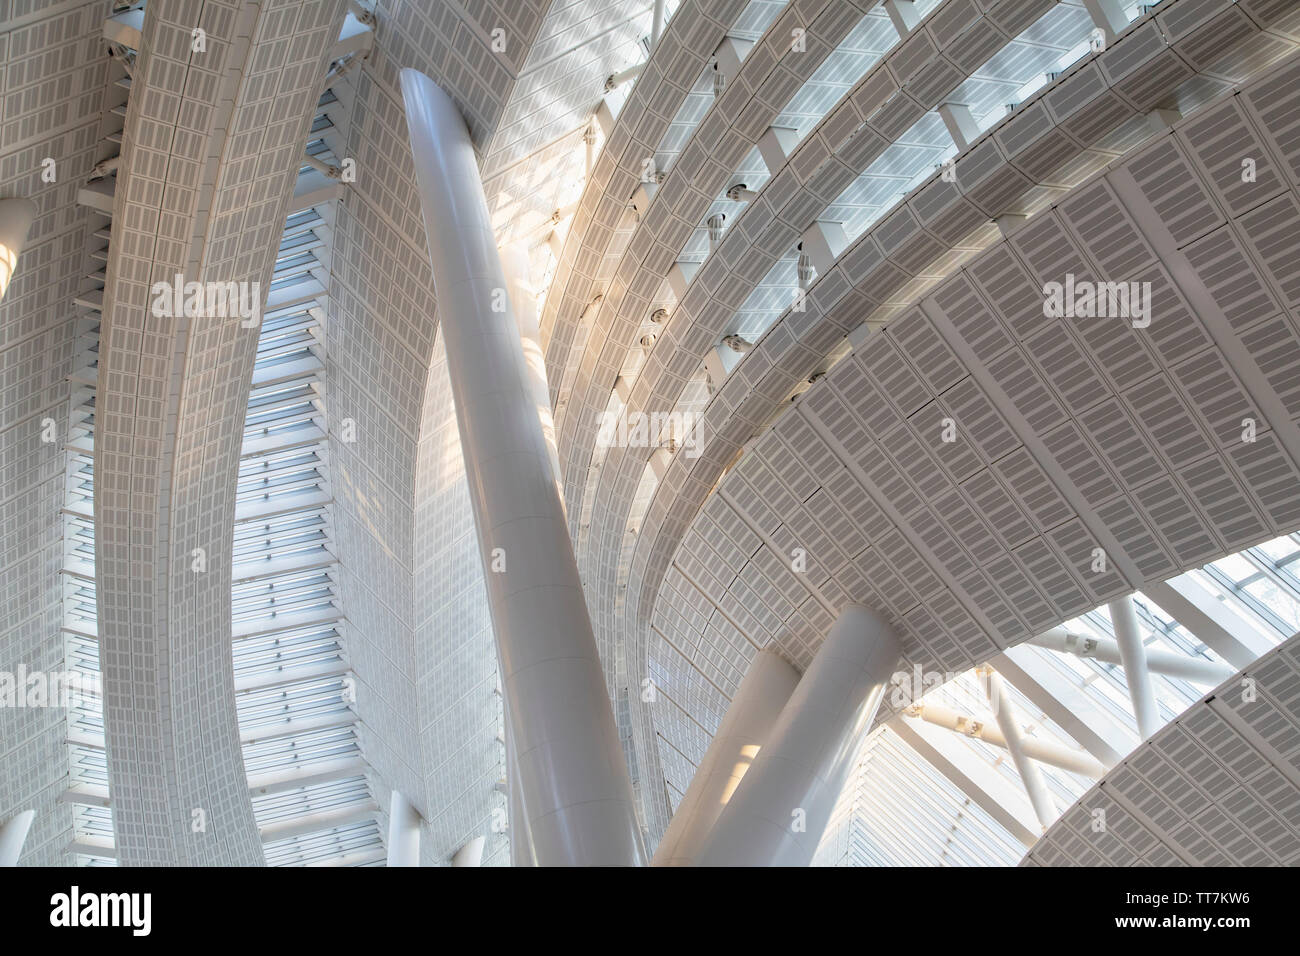 Interior of West Kowloon High Speed Rail Station, West Kowloon, Hong Kong - Stock Image